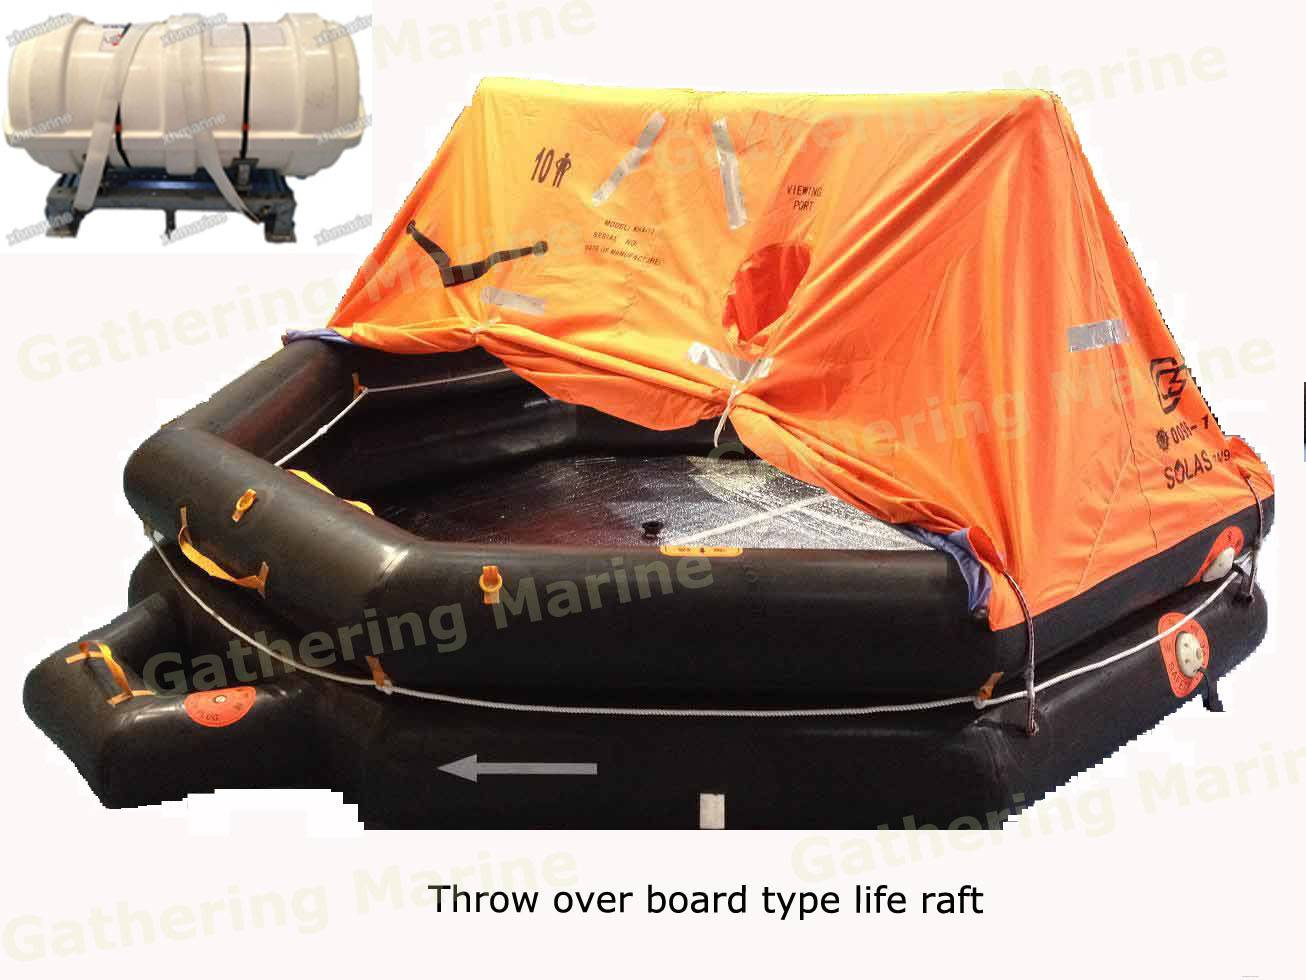 Marine lifesaving Solas approved life raft for sale